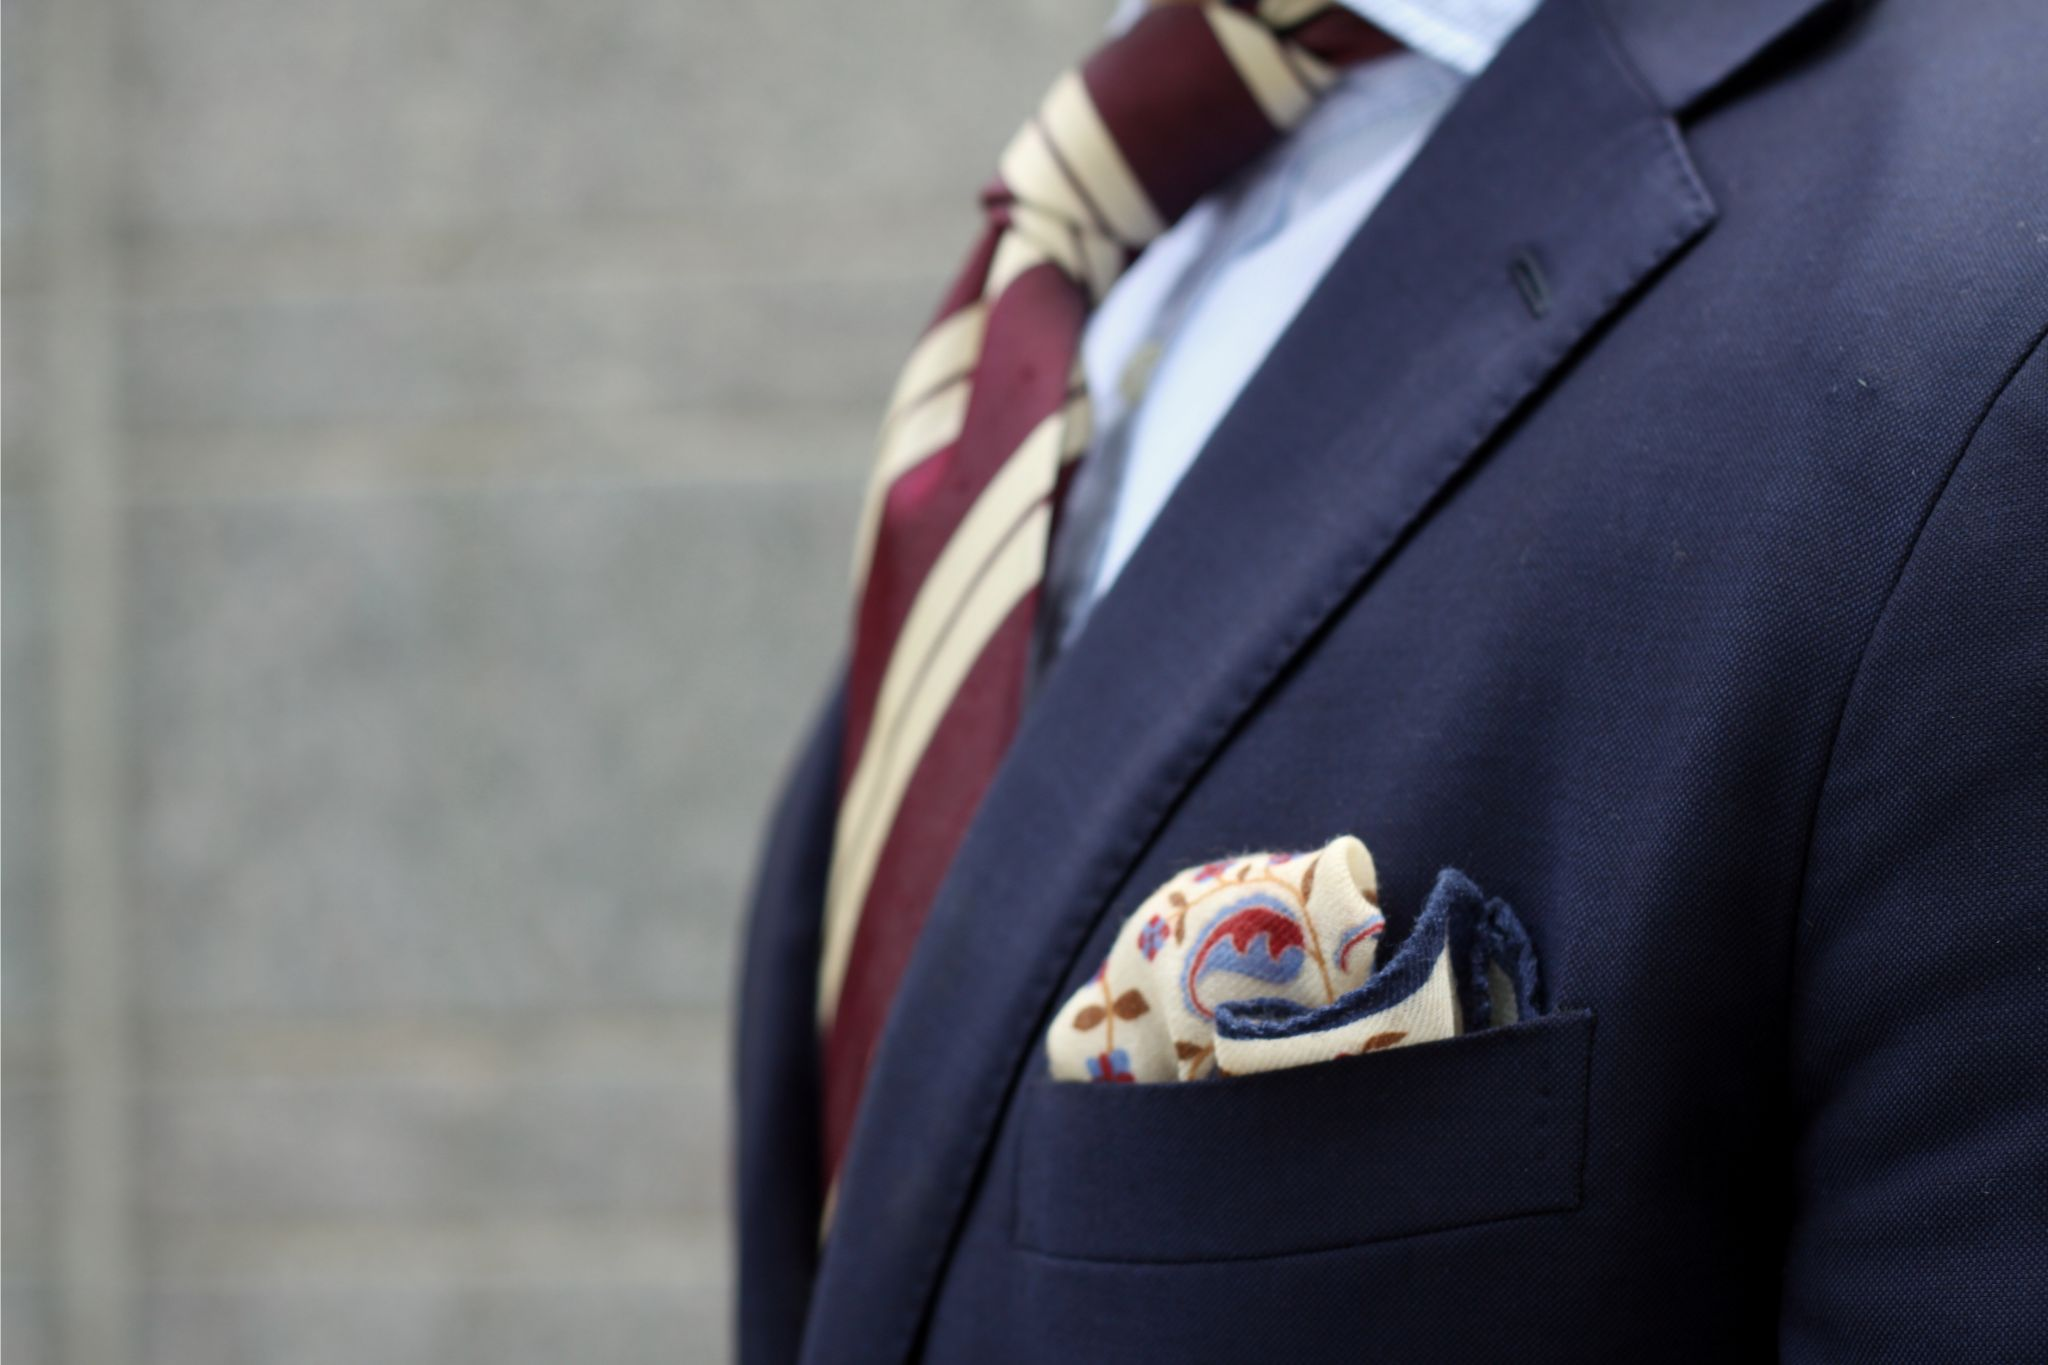 Burgundy accessories - wool pocket square with blue and burgundy details